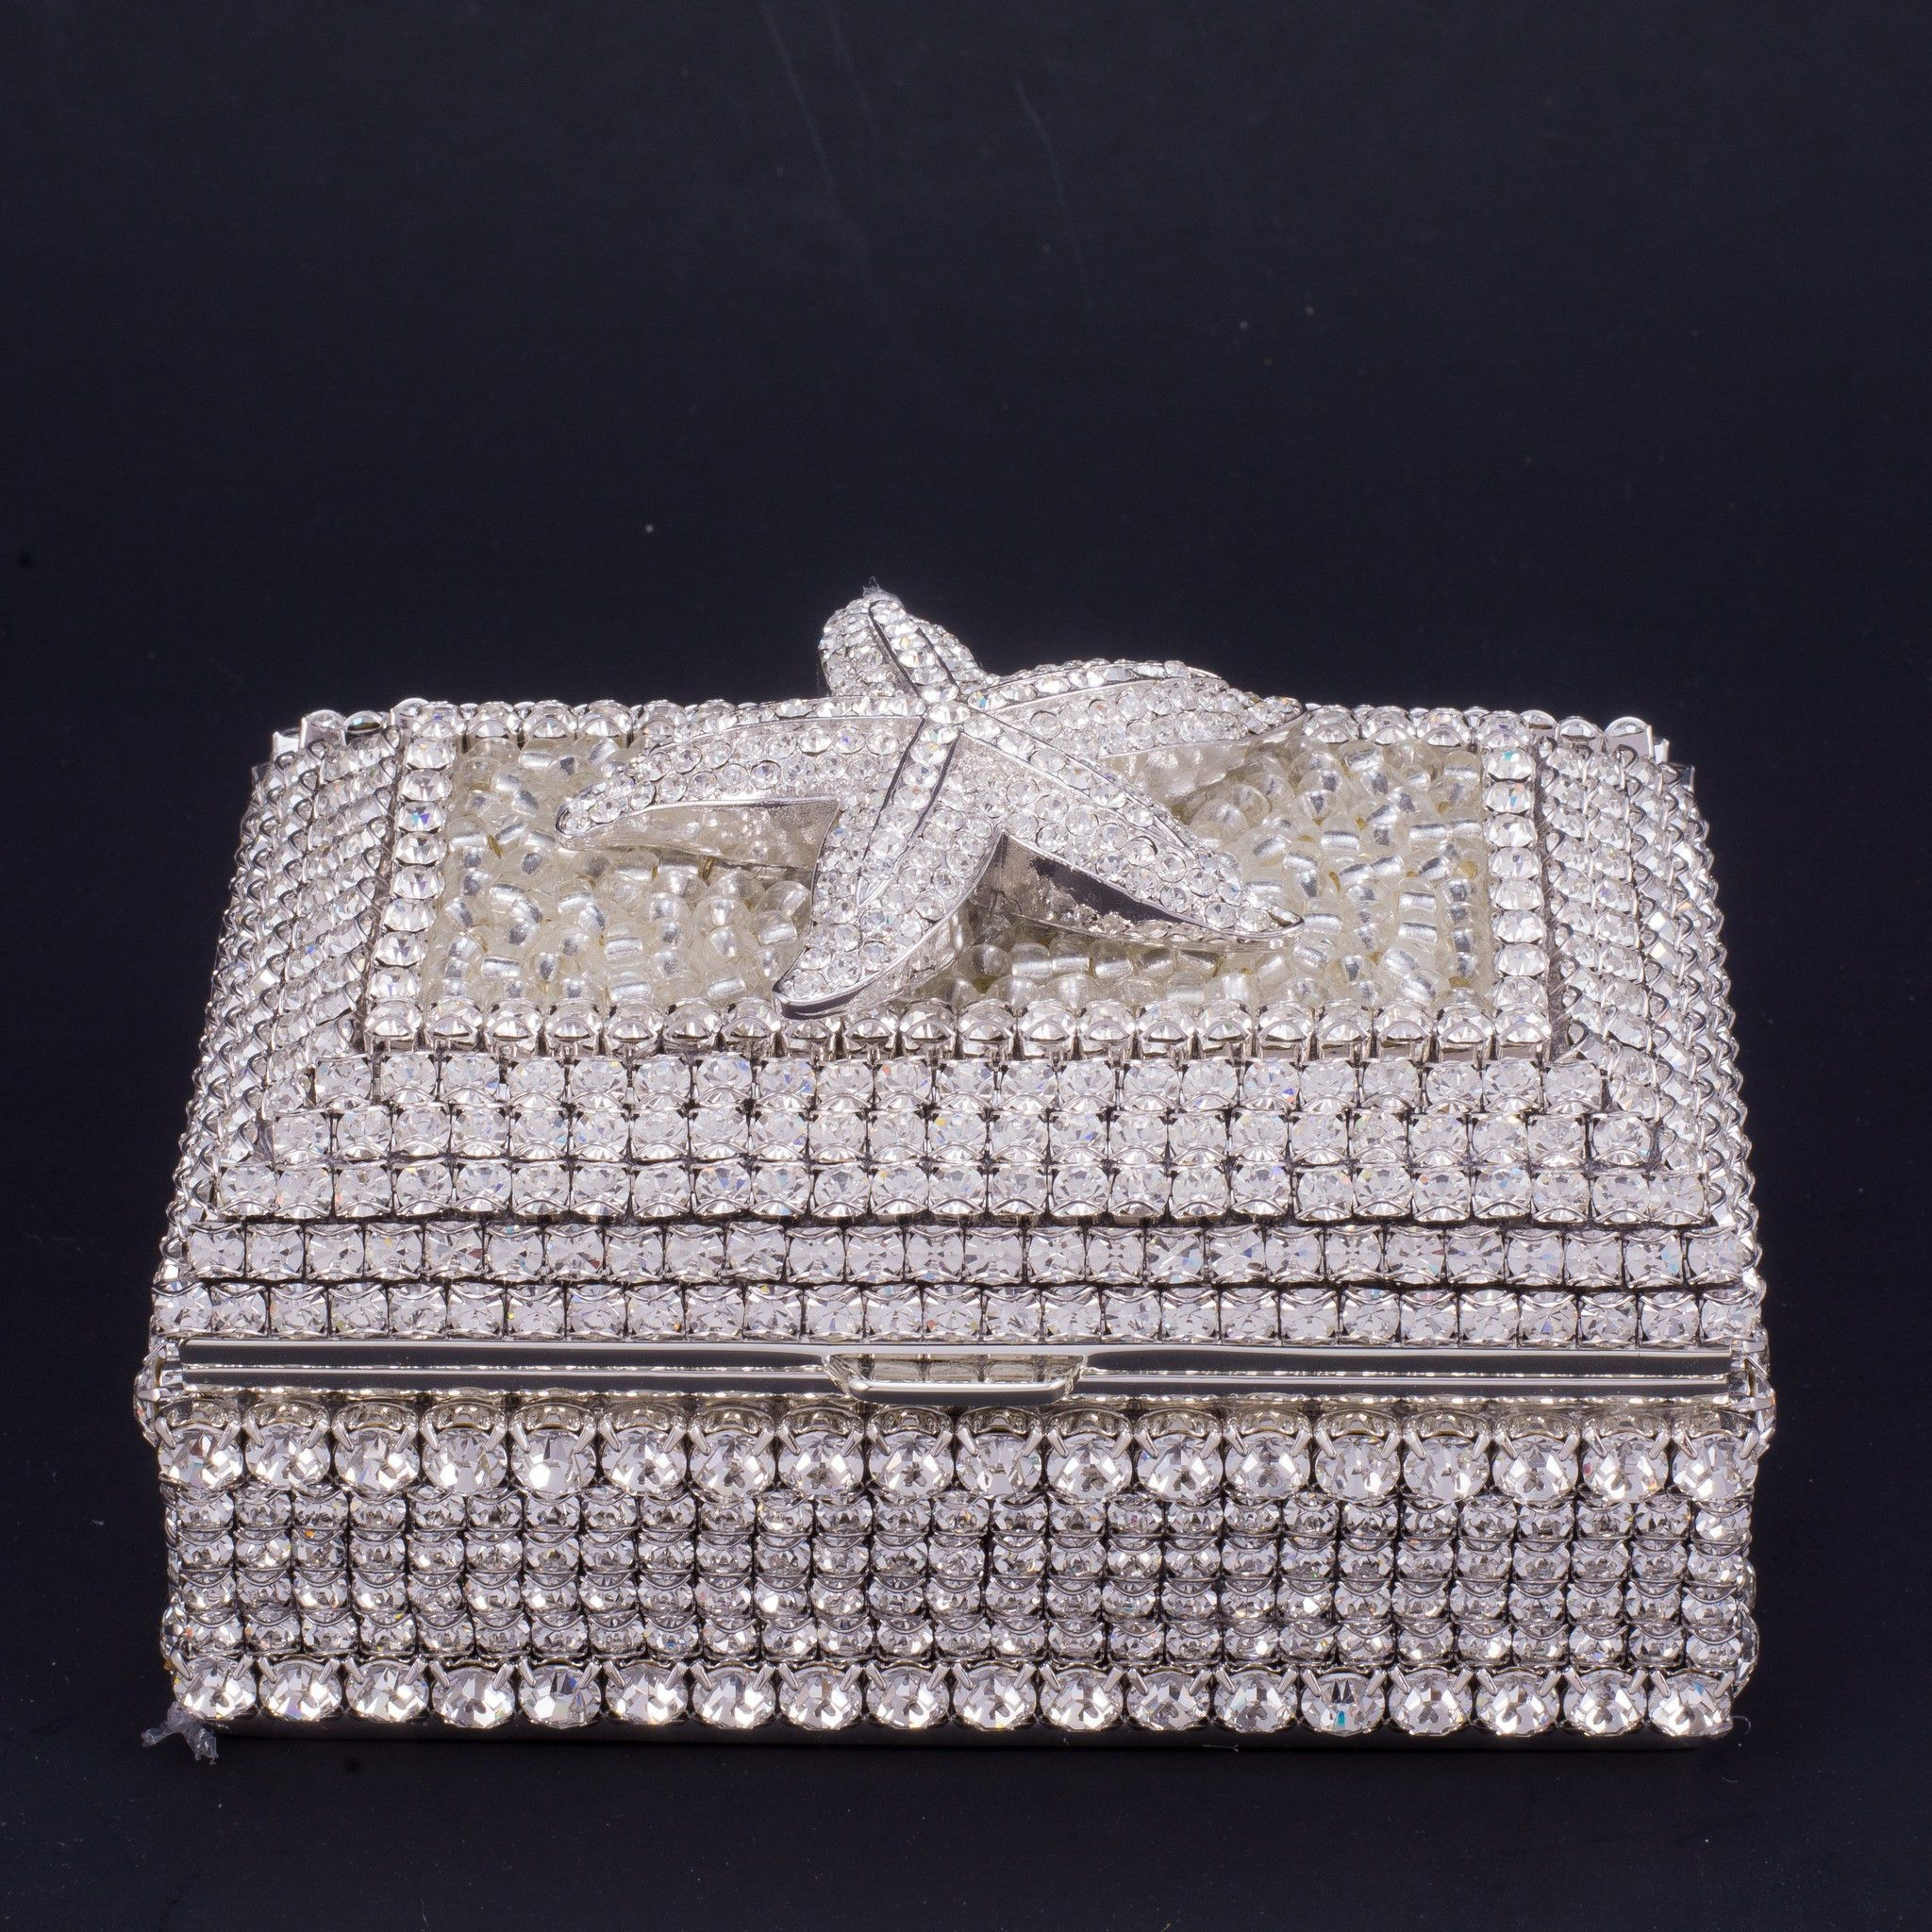 Starfish Keepsake Box Featuring Swarovski Crystals Starfish